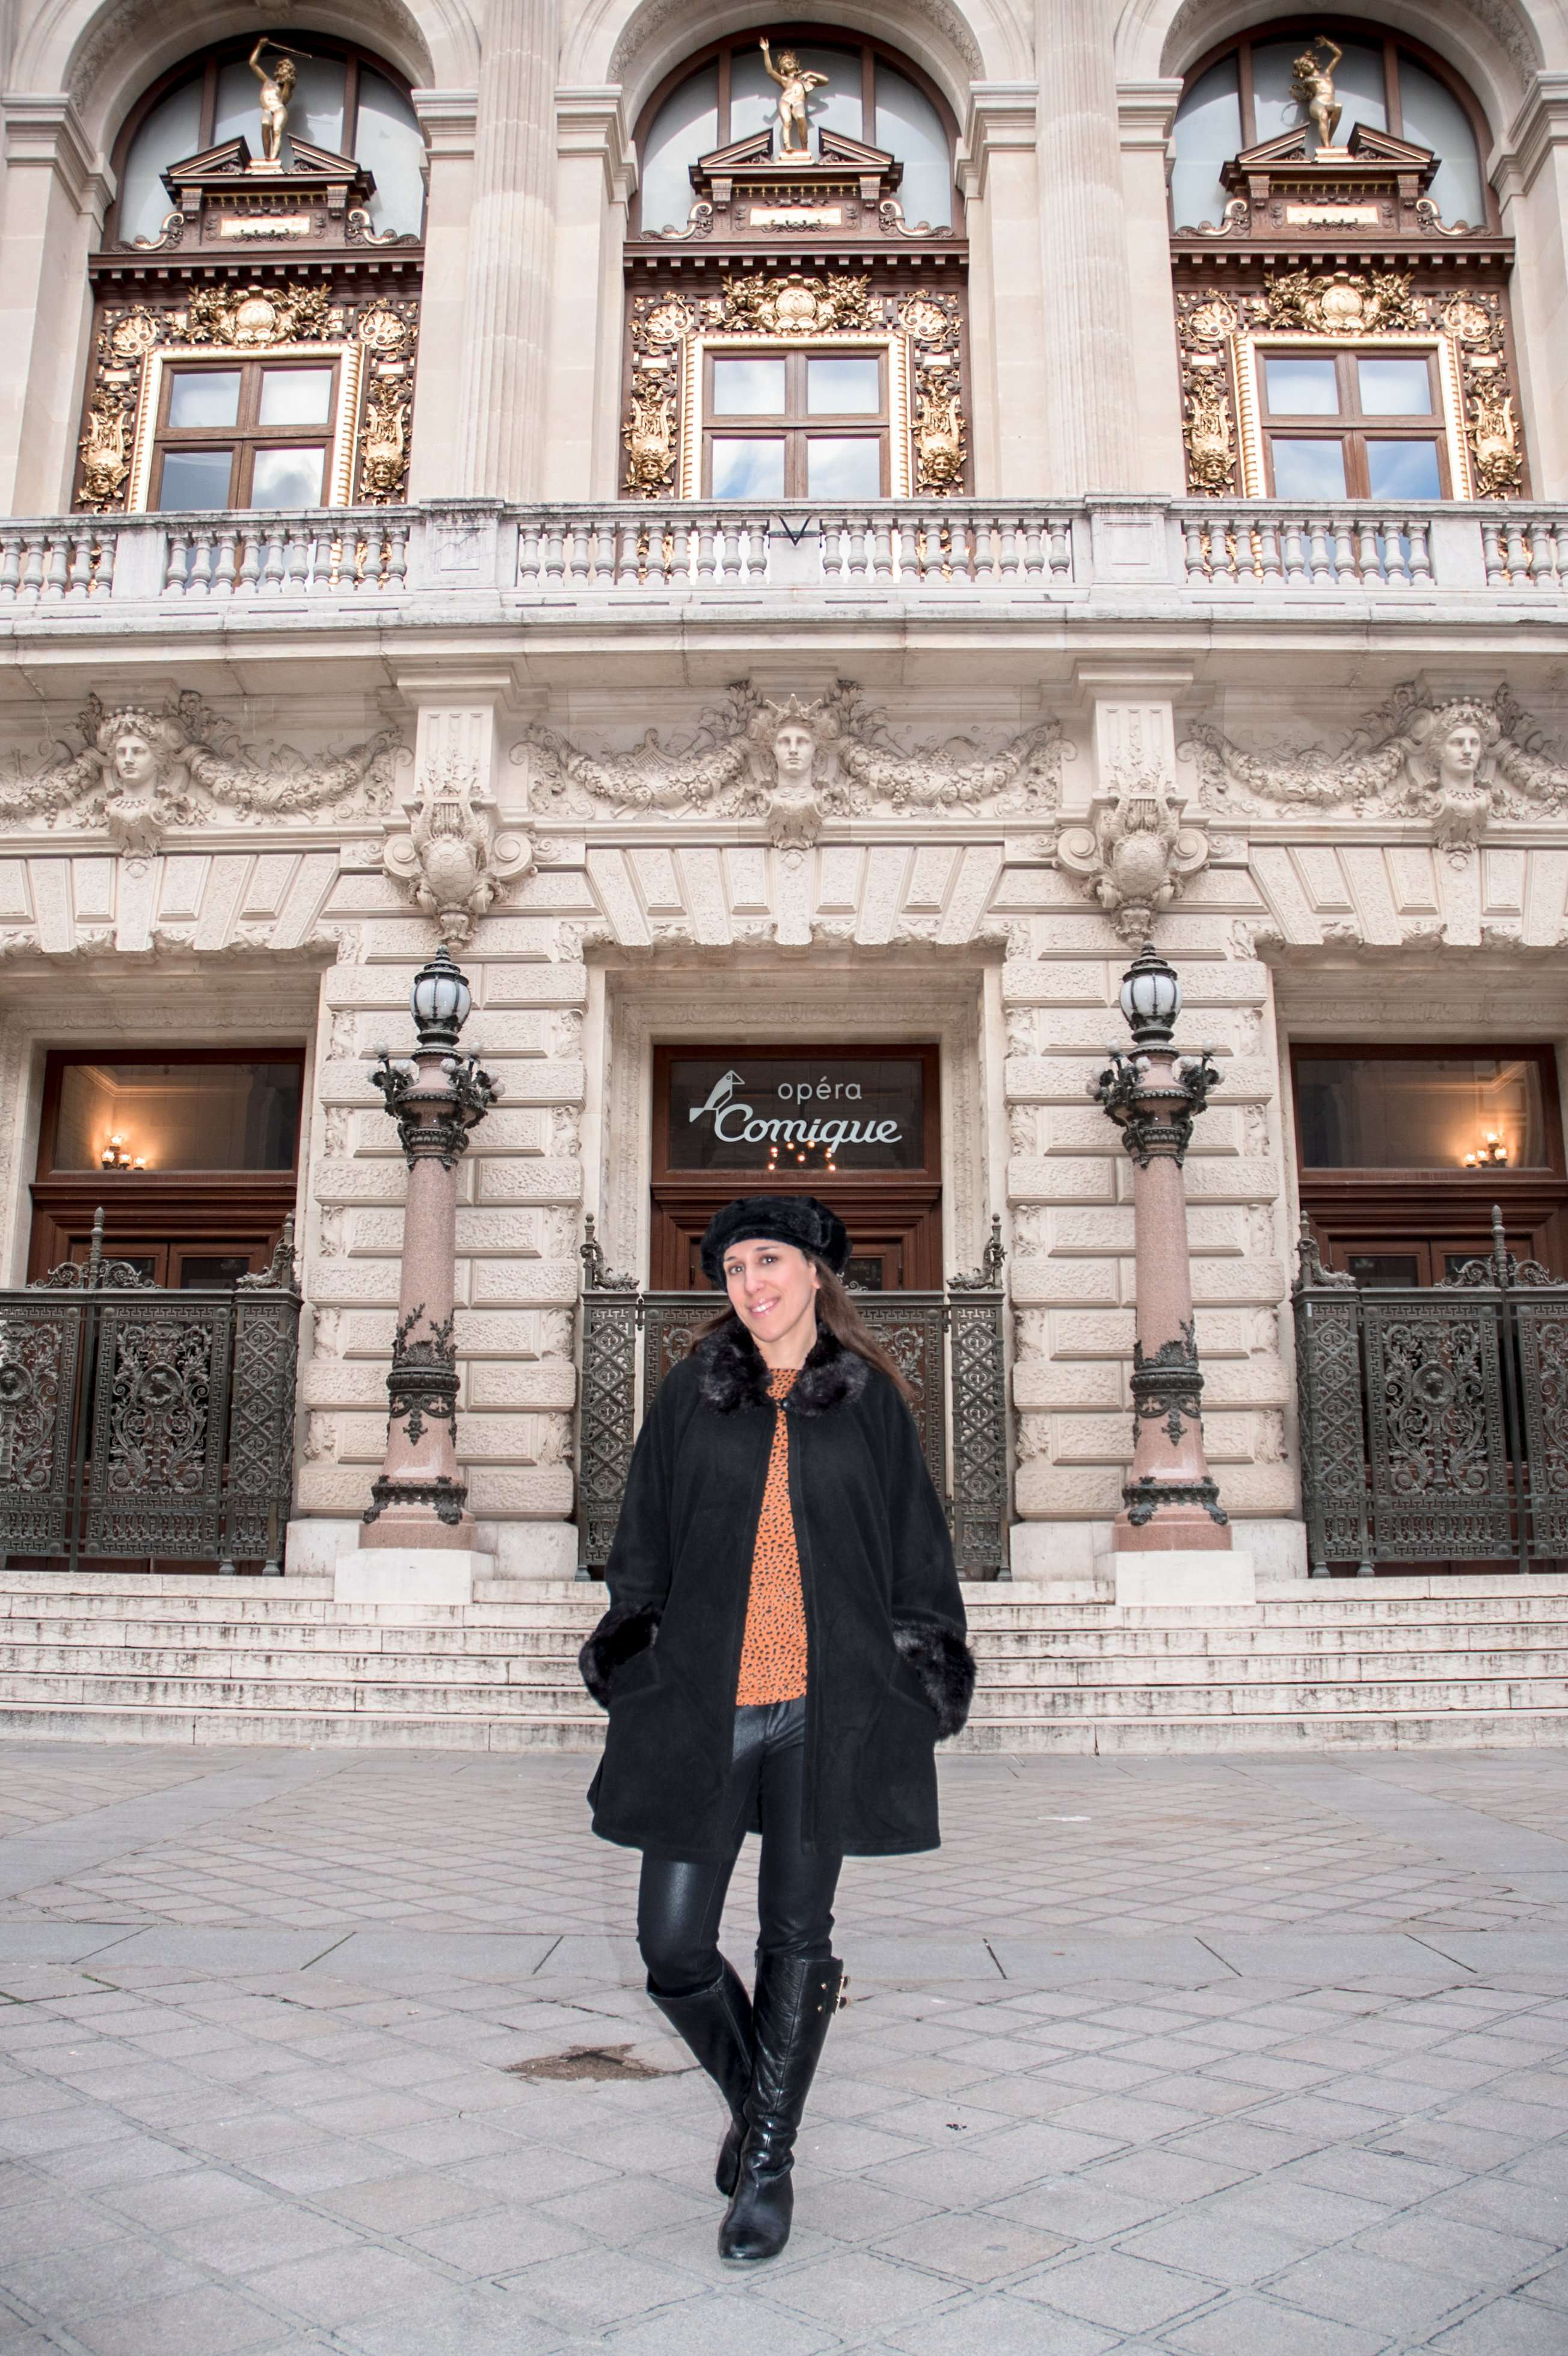 In front of the Opera Comique